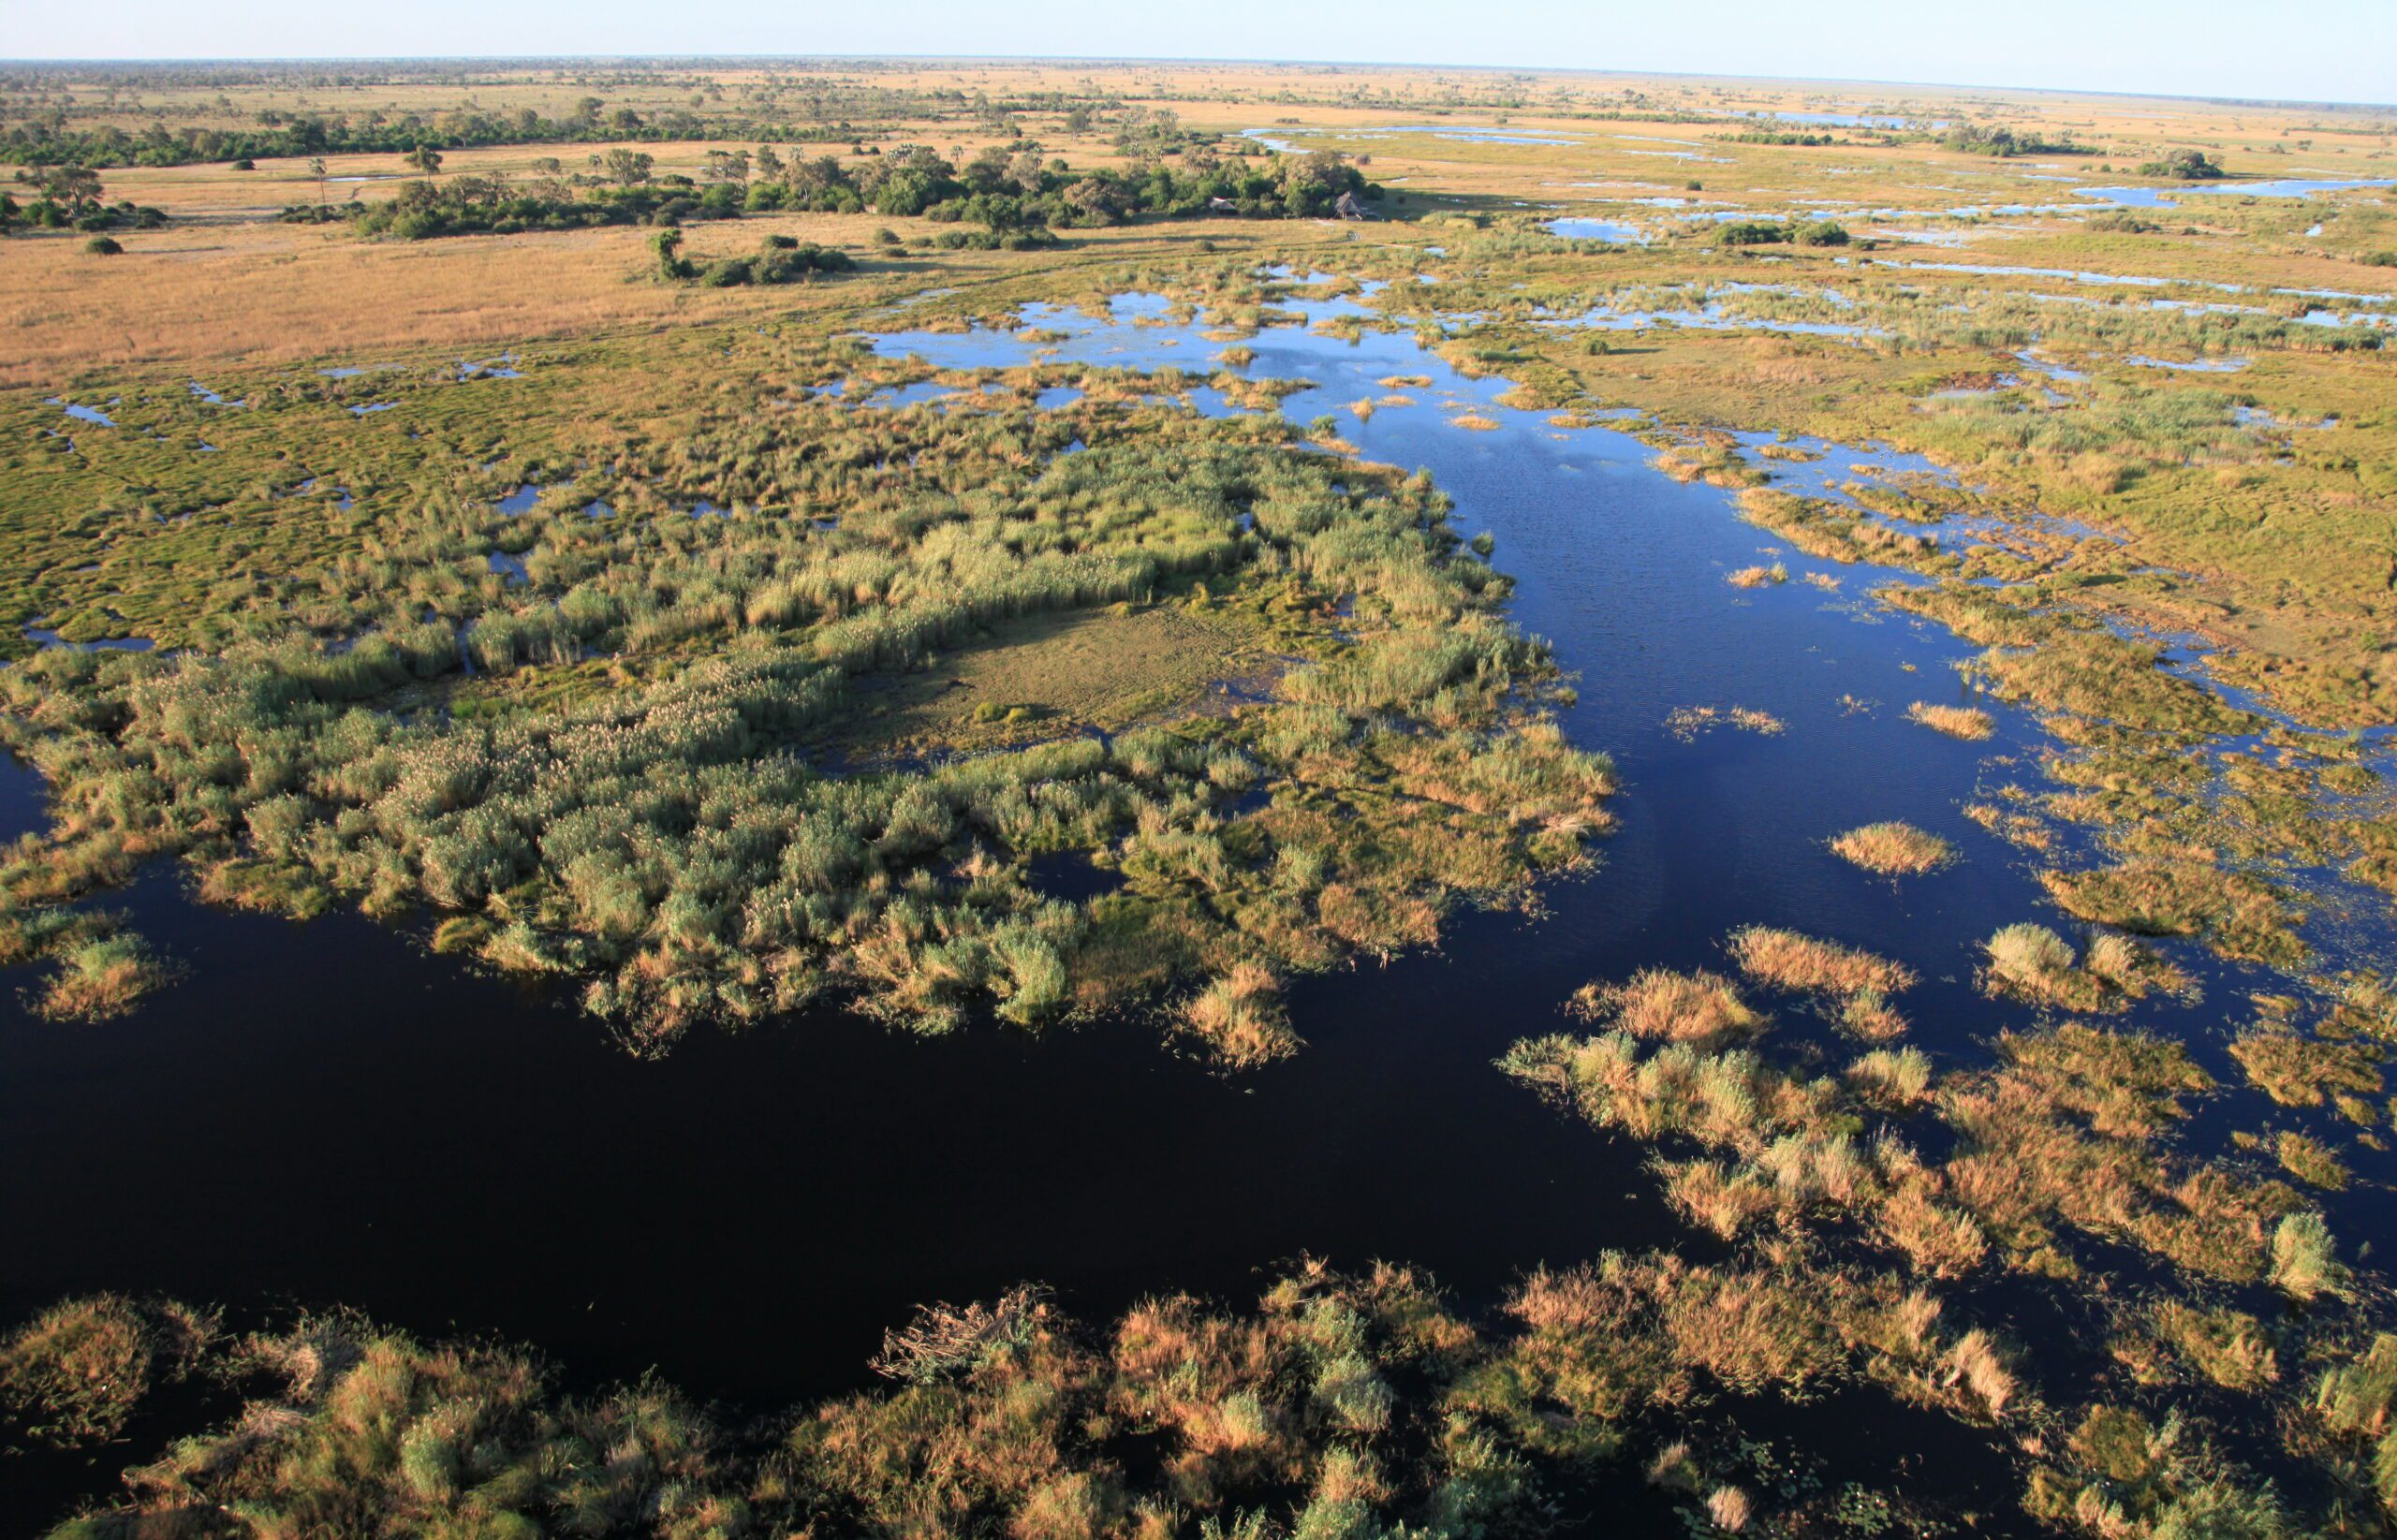 meandering selinda spillway surrounded by reeds and small islands